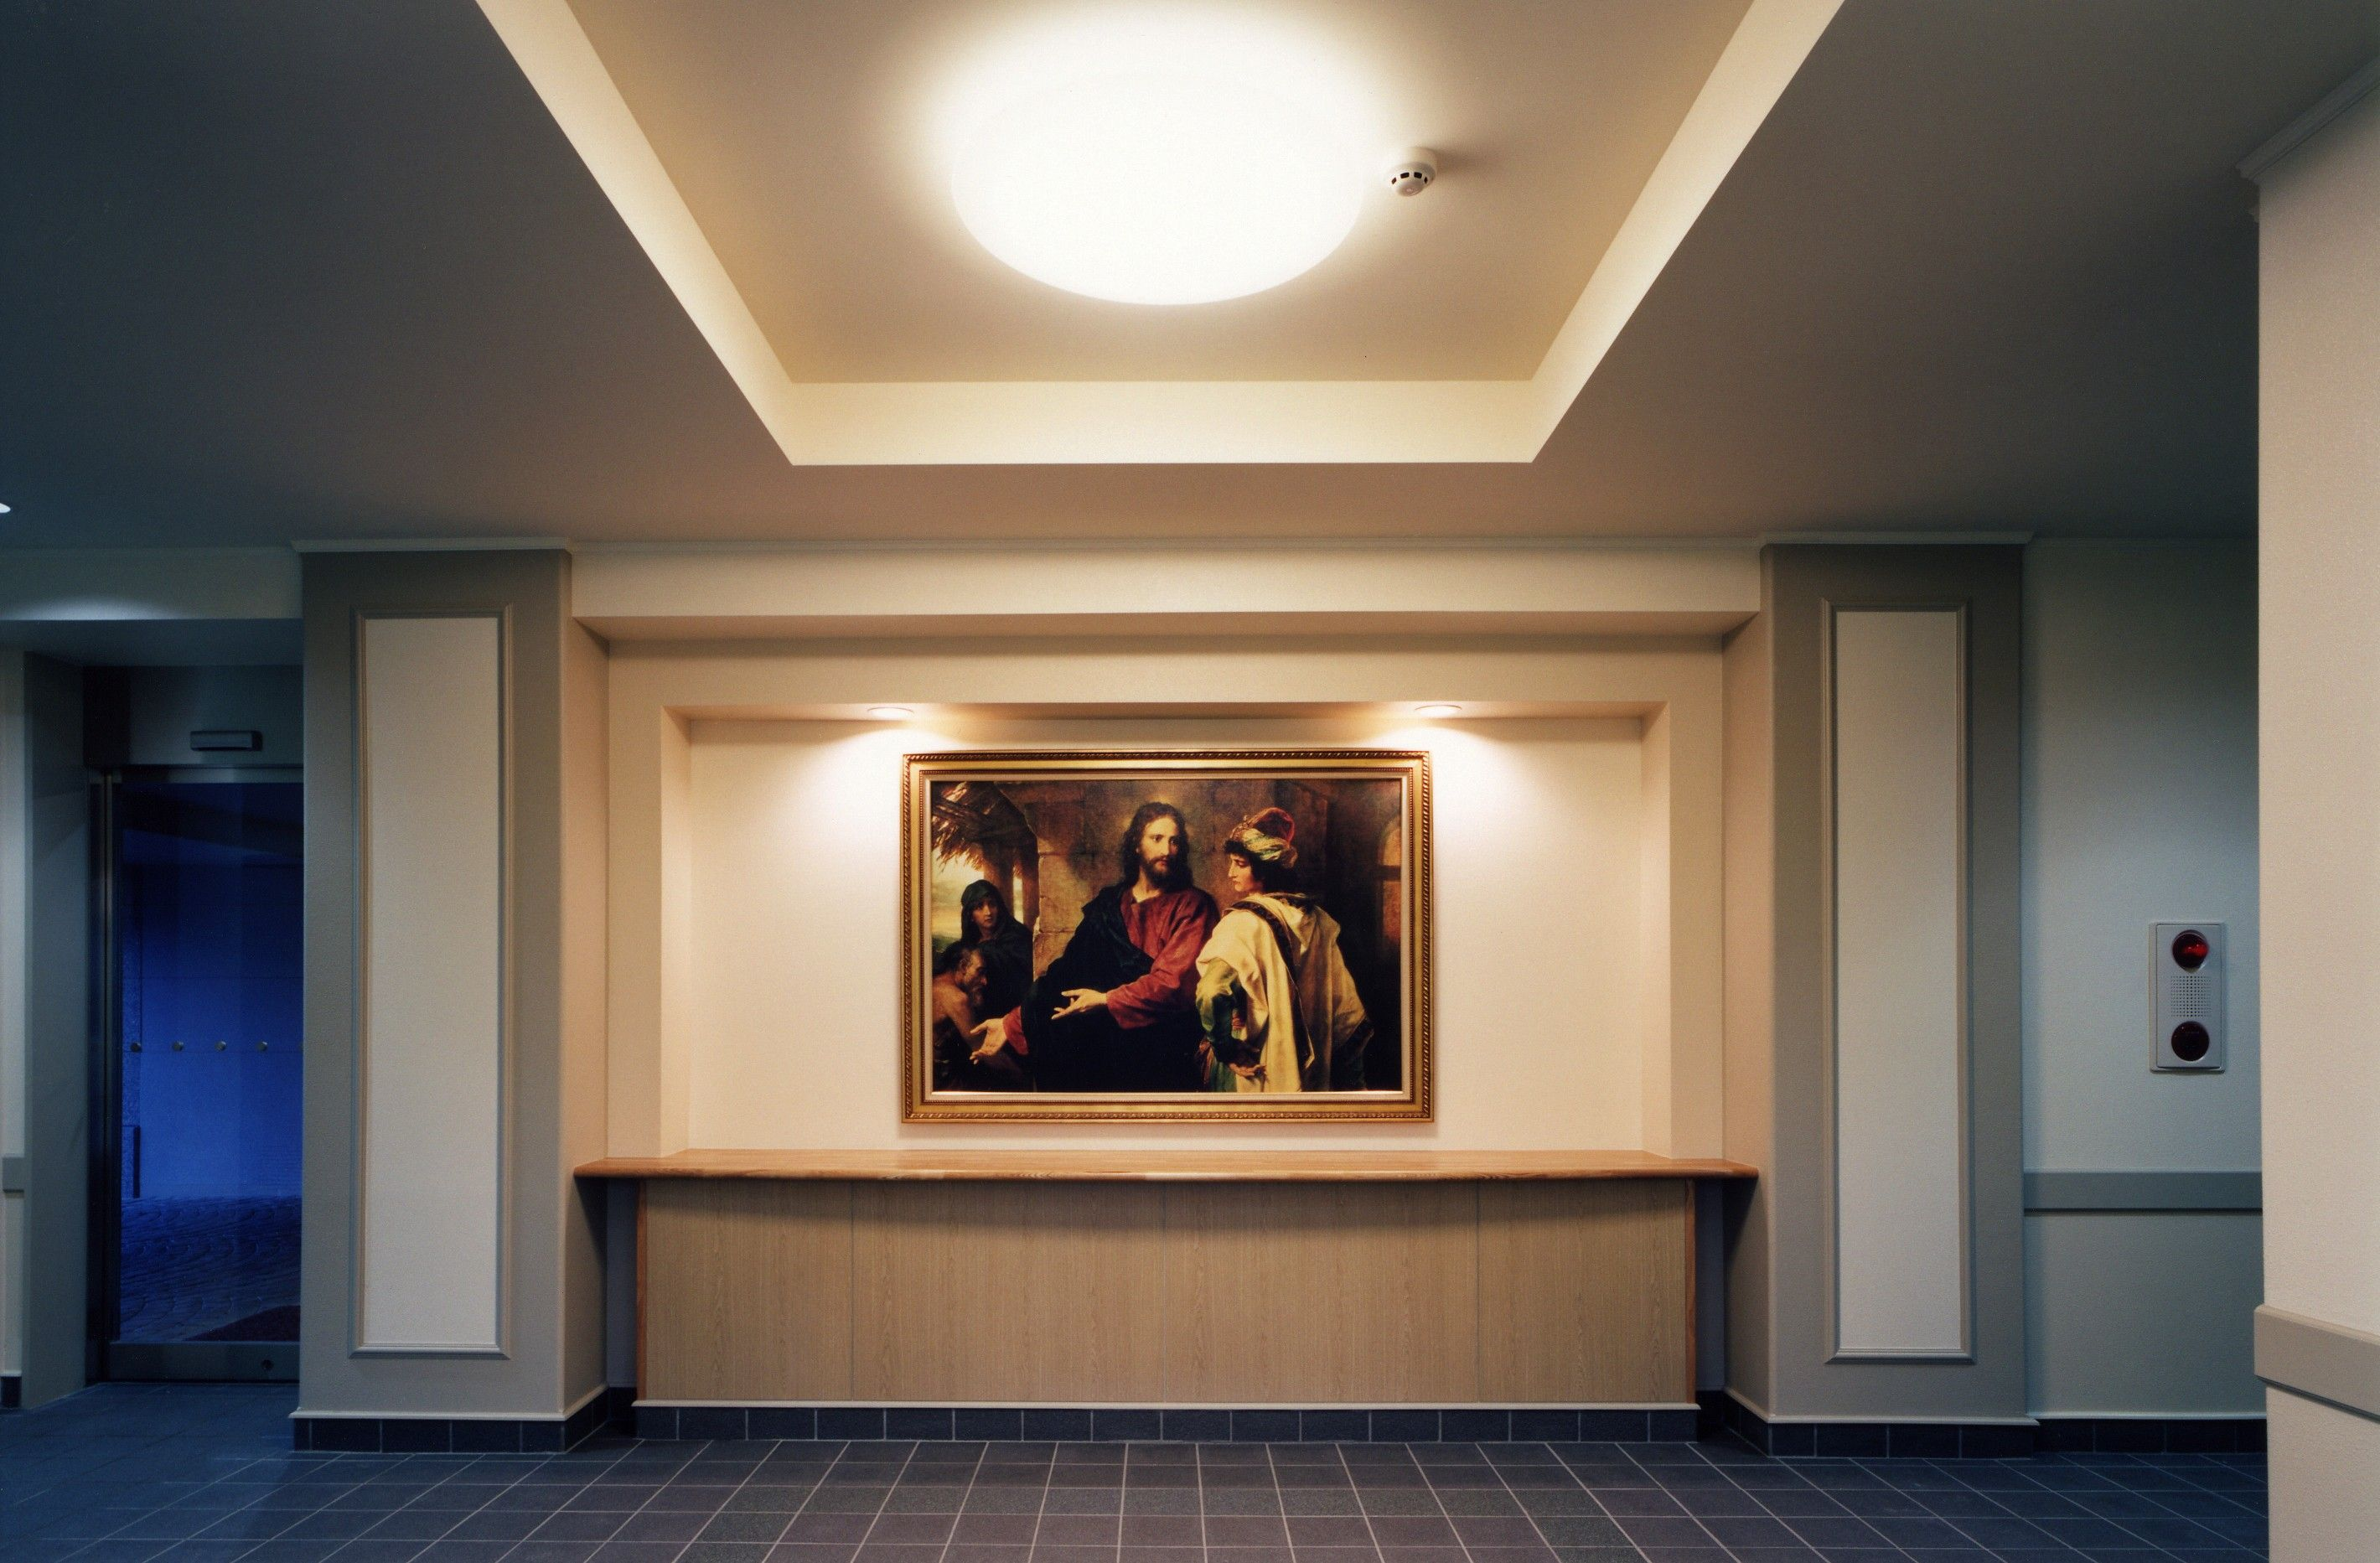 A meetinghouse foyer with a light shining on a painting of Christ.